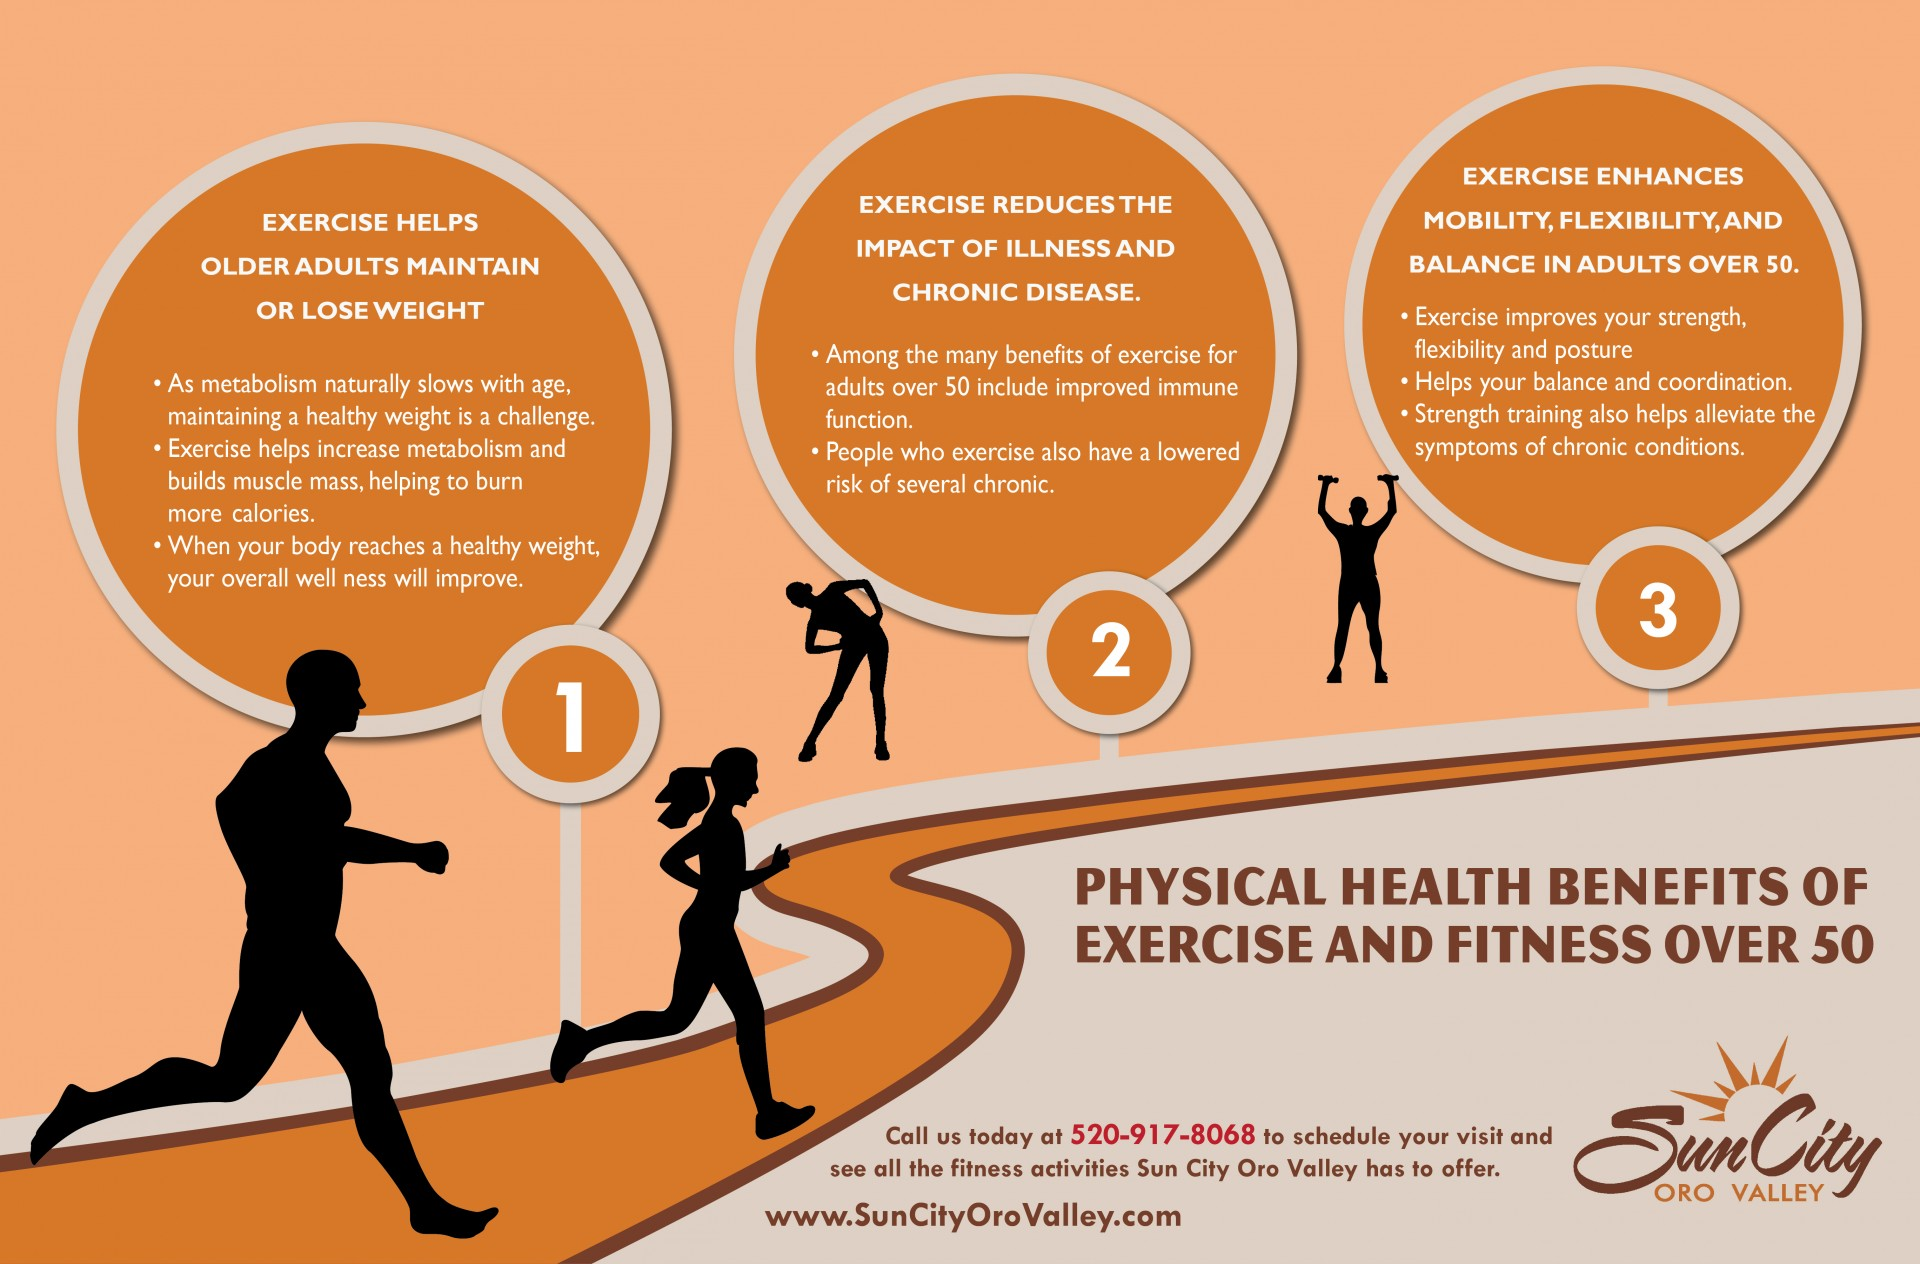 025 Essay Example Physical Health Benefits Of Exercise And Fitness 53cd51461bdcf Unusual Pdf Short On In Hindi Conclusion 1920